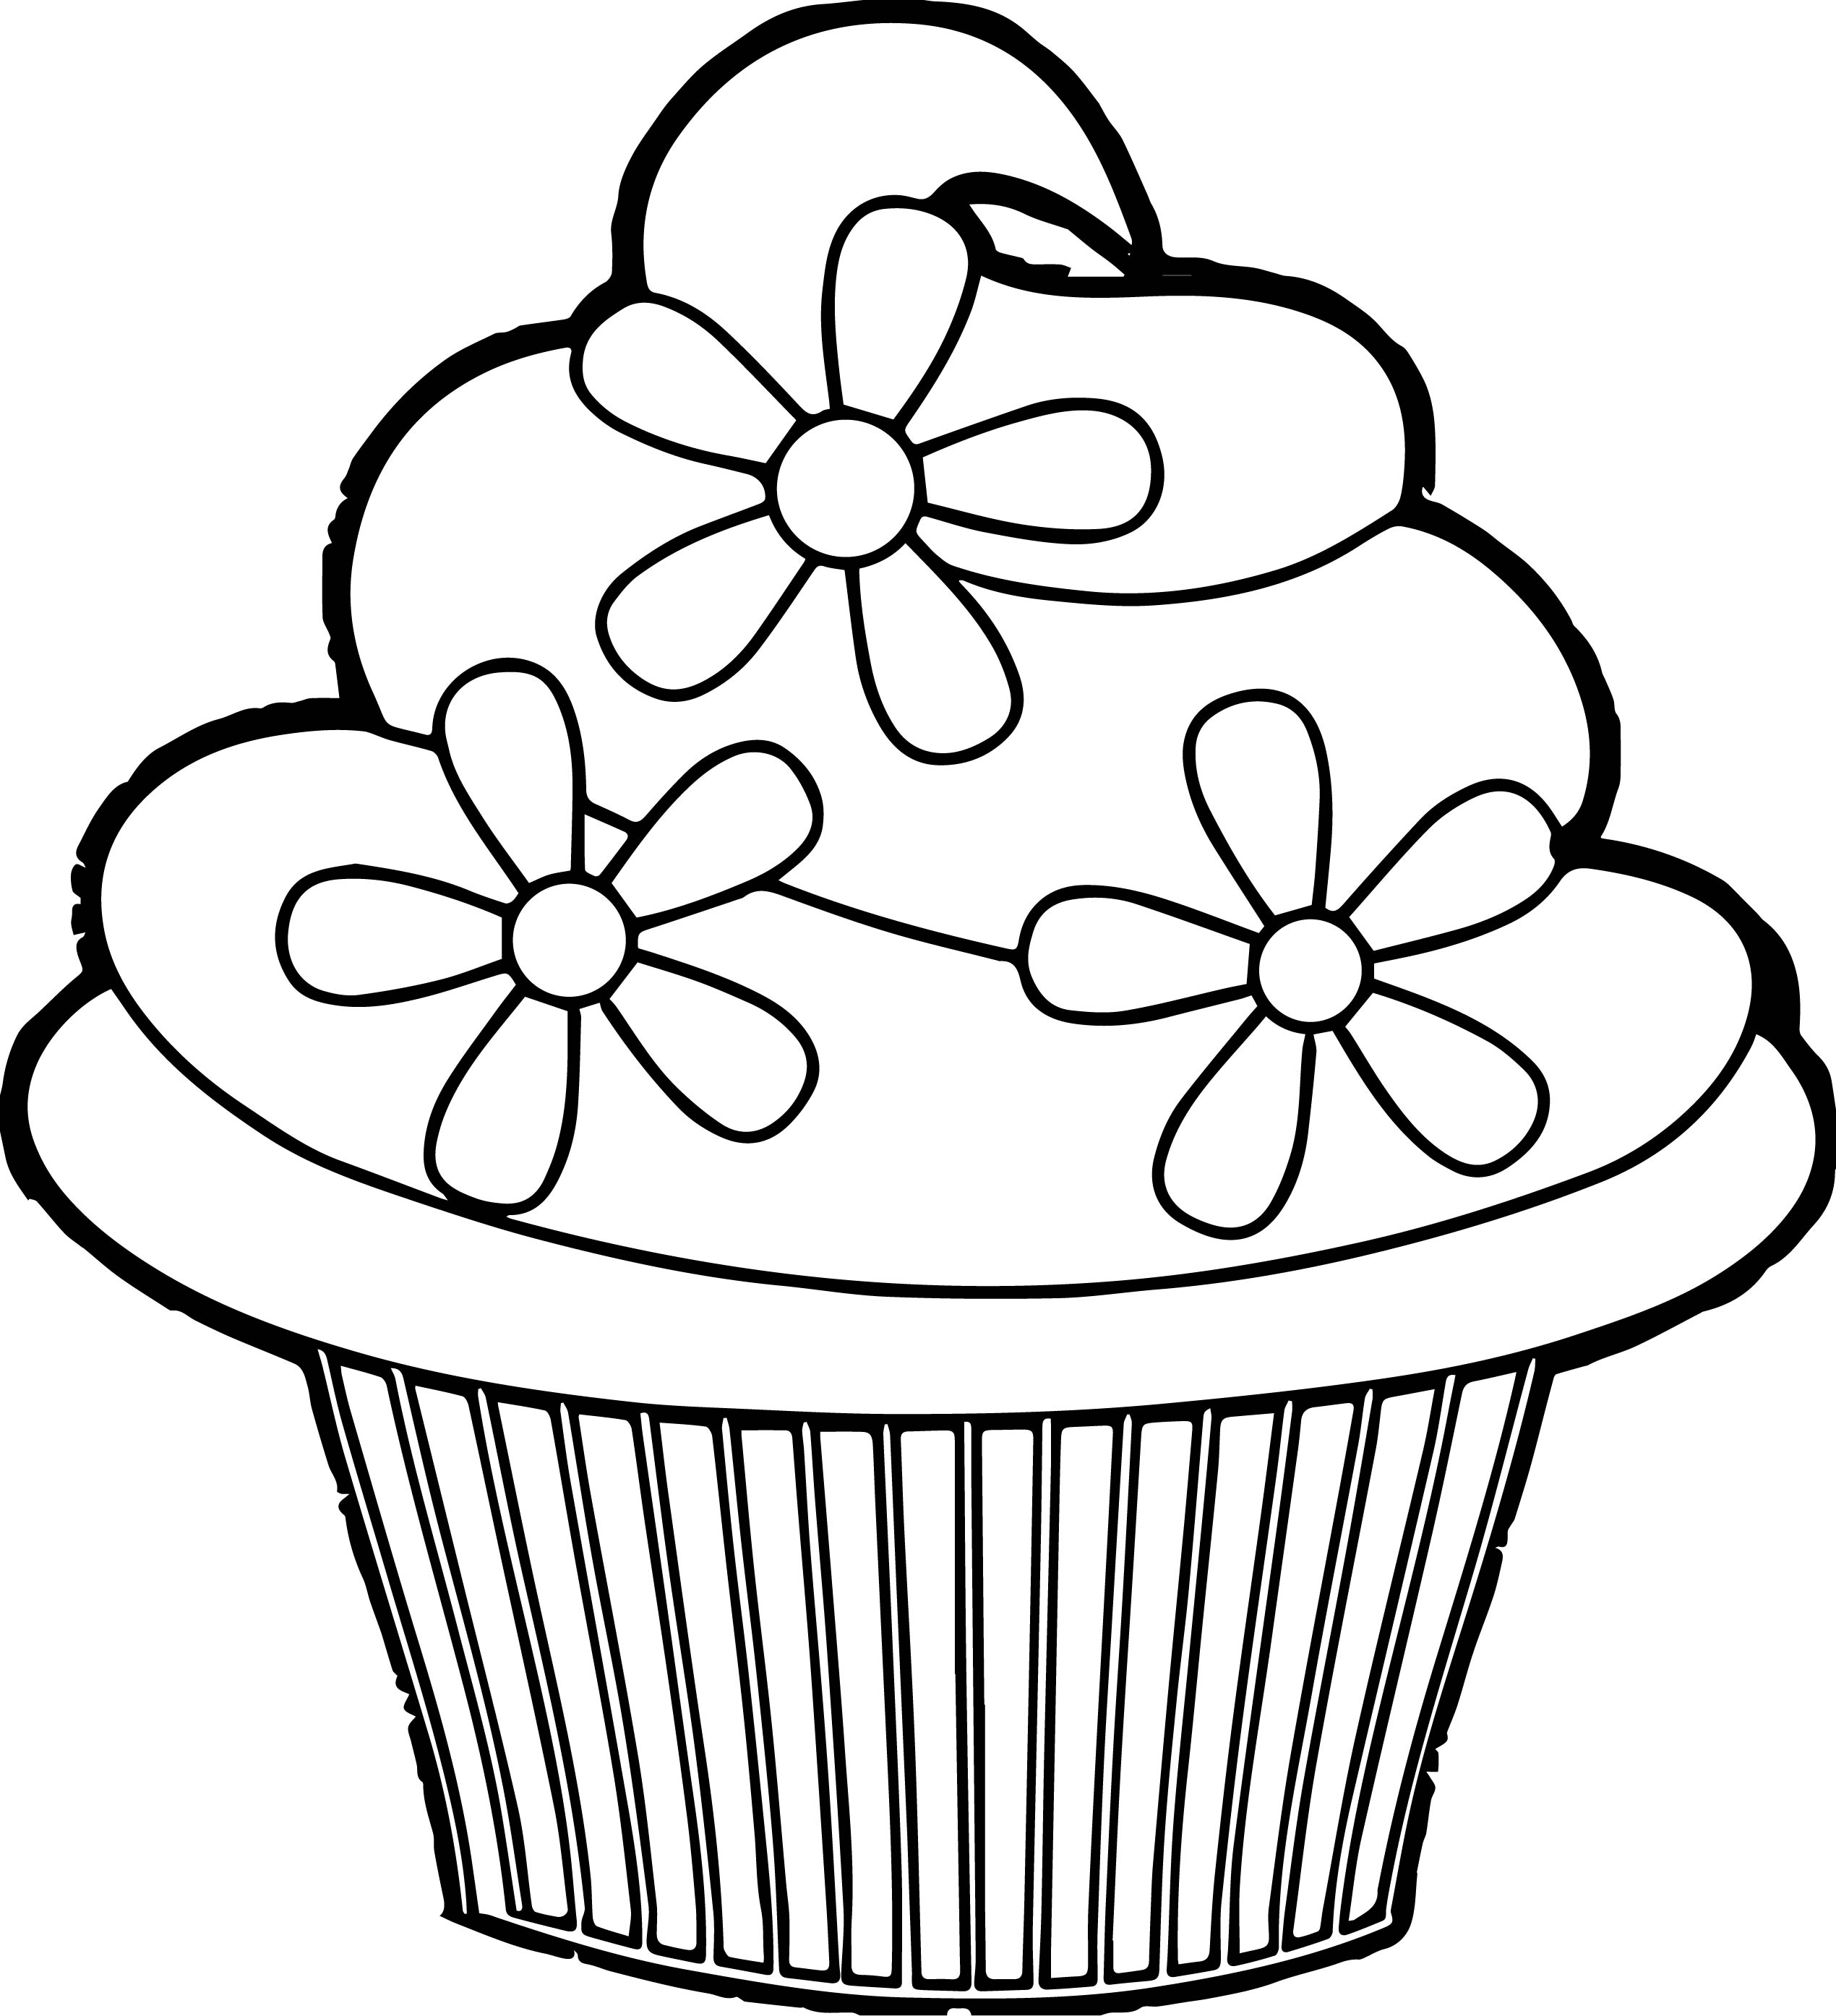 simple cake coloring pages birthday cake drawing at getdrawings free download pages simple cake coloring